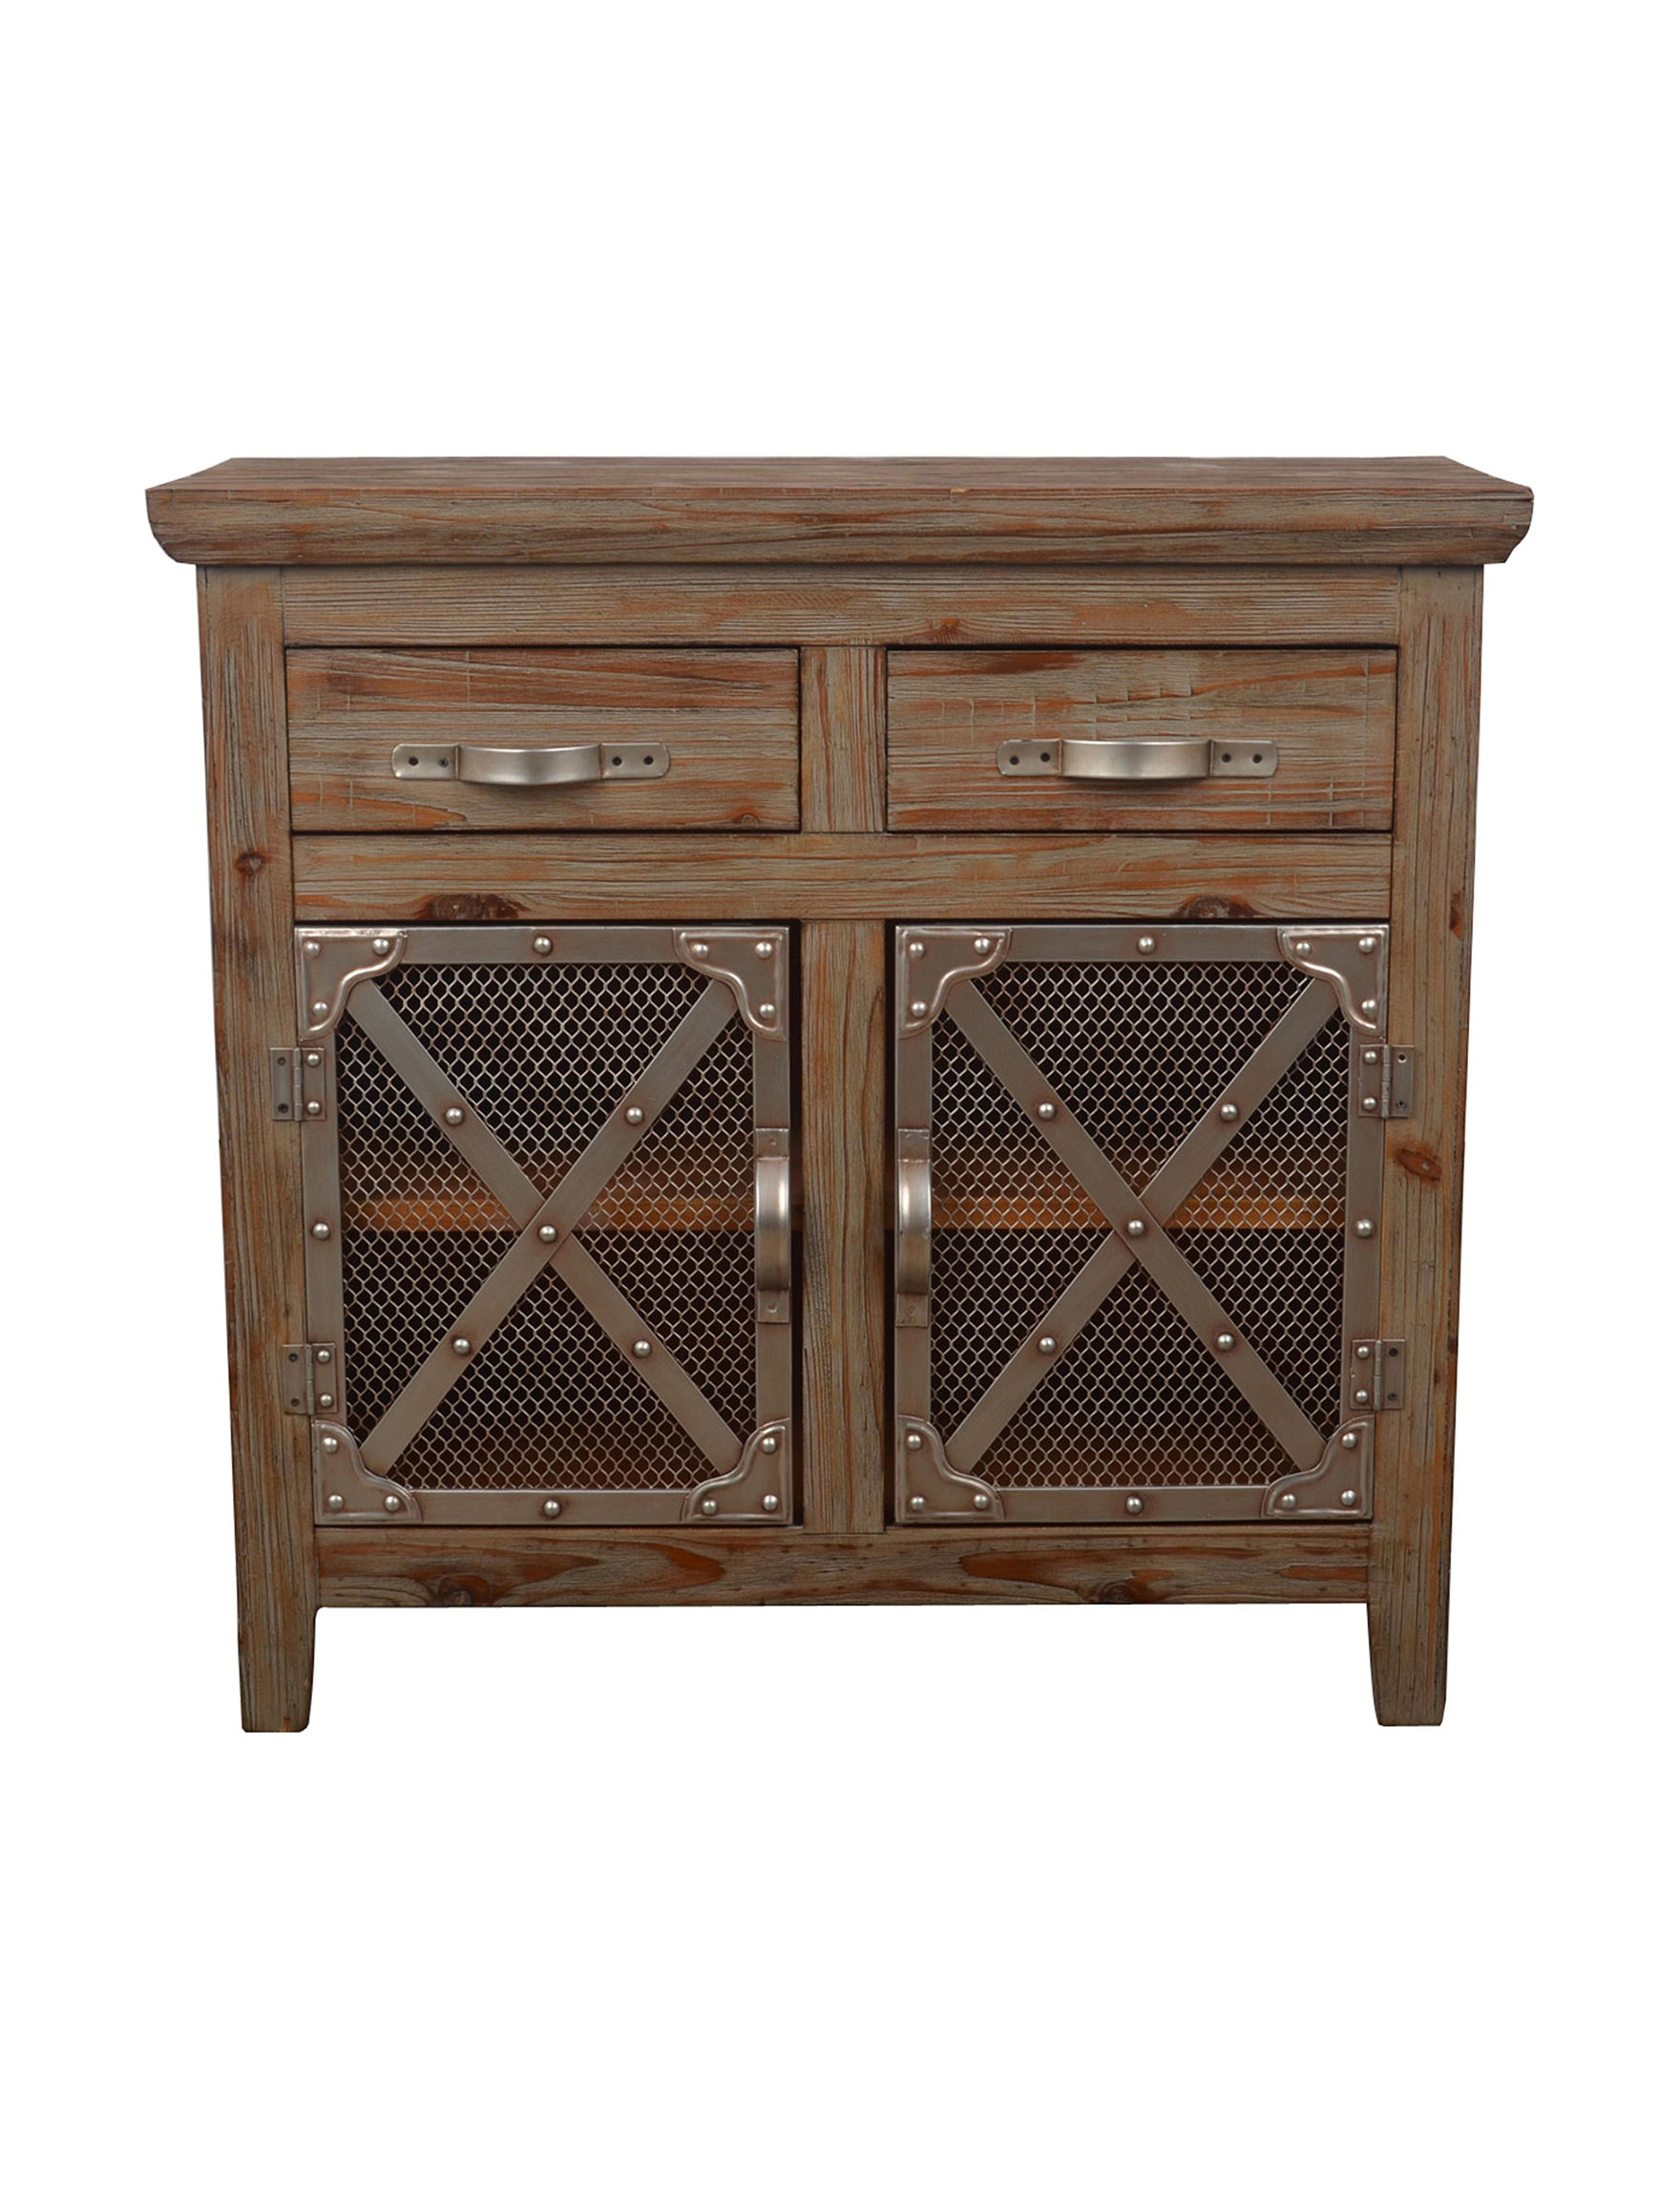 Decor Therapy Brown Bar & Wine Storage Cabinets & Cupboards Kitchen & Dining Furniture Living Room Furniture